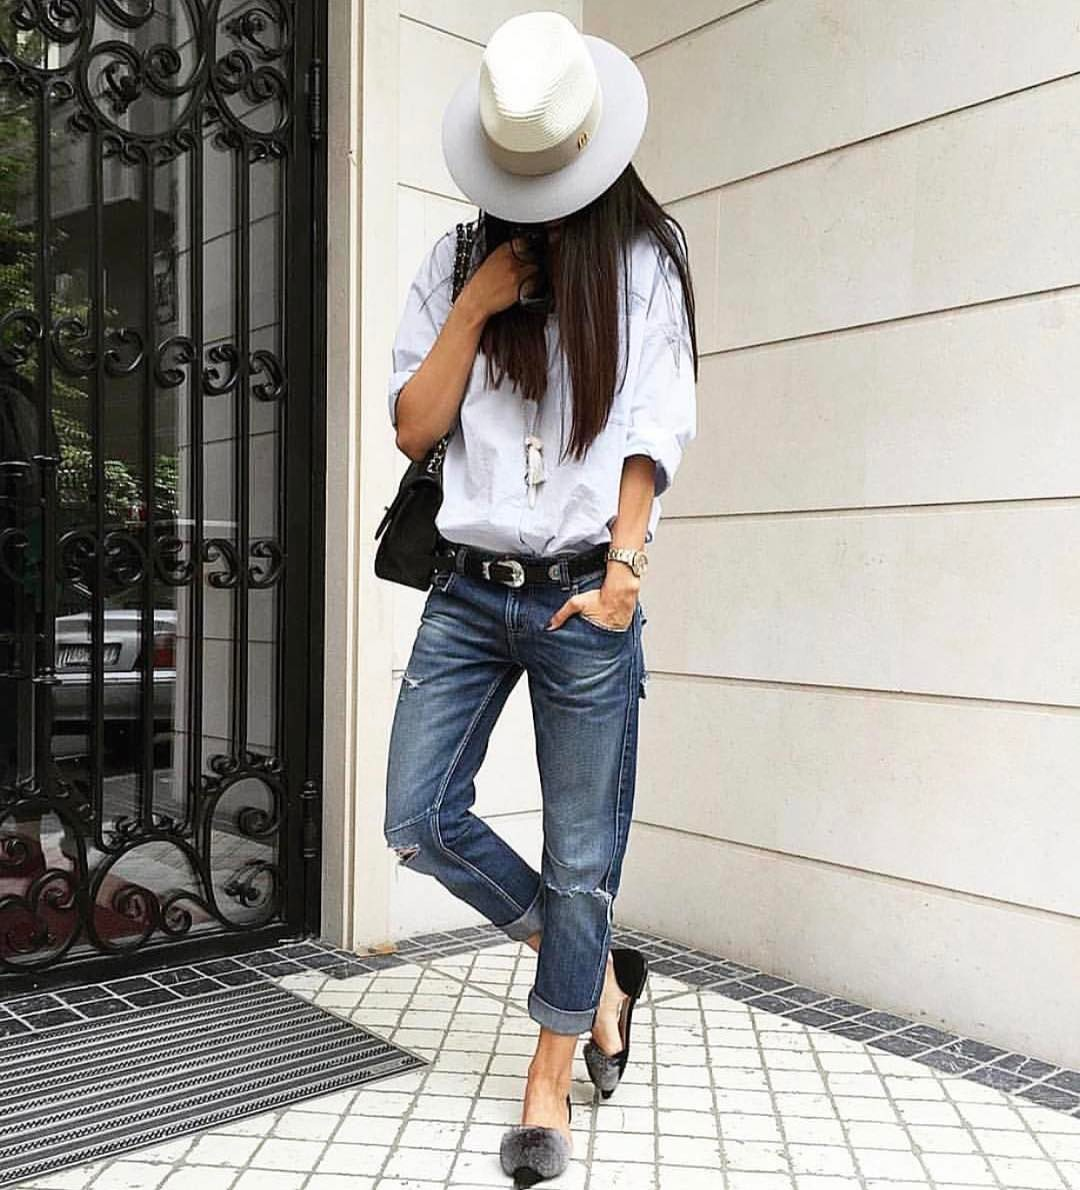 White Shirt With Cuffed Jeans And Fur Flat Pumps: Mannish OOTD 2019